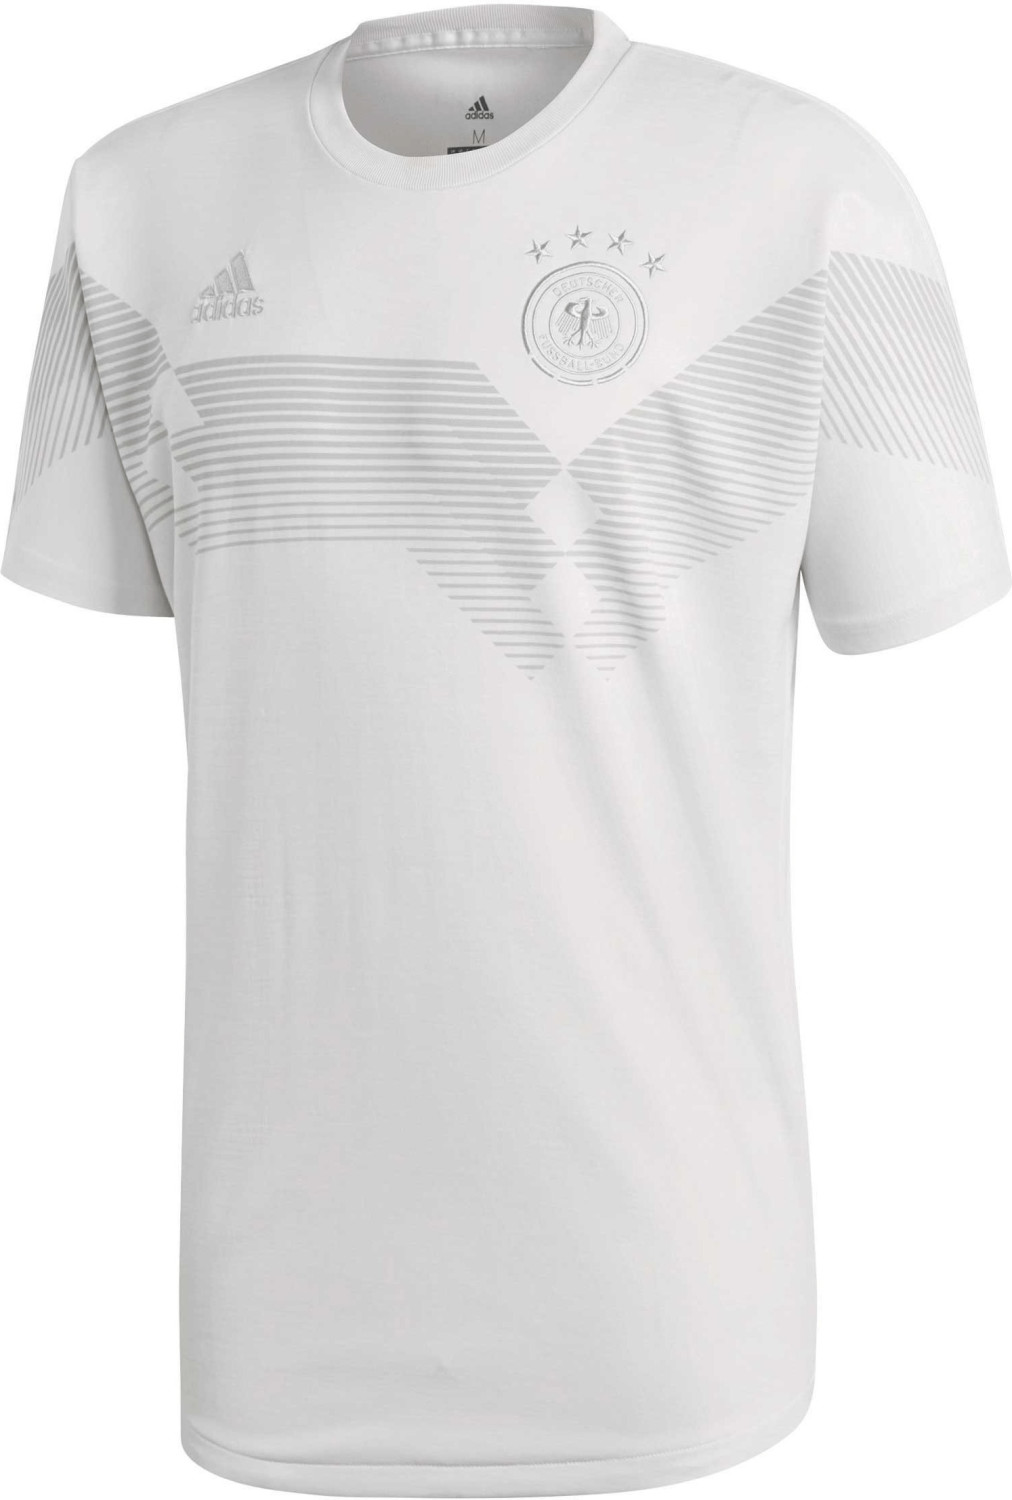 Adidas DFB Seasonal Special T-Shirt white/cryst...